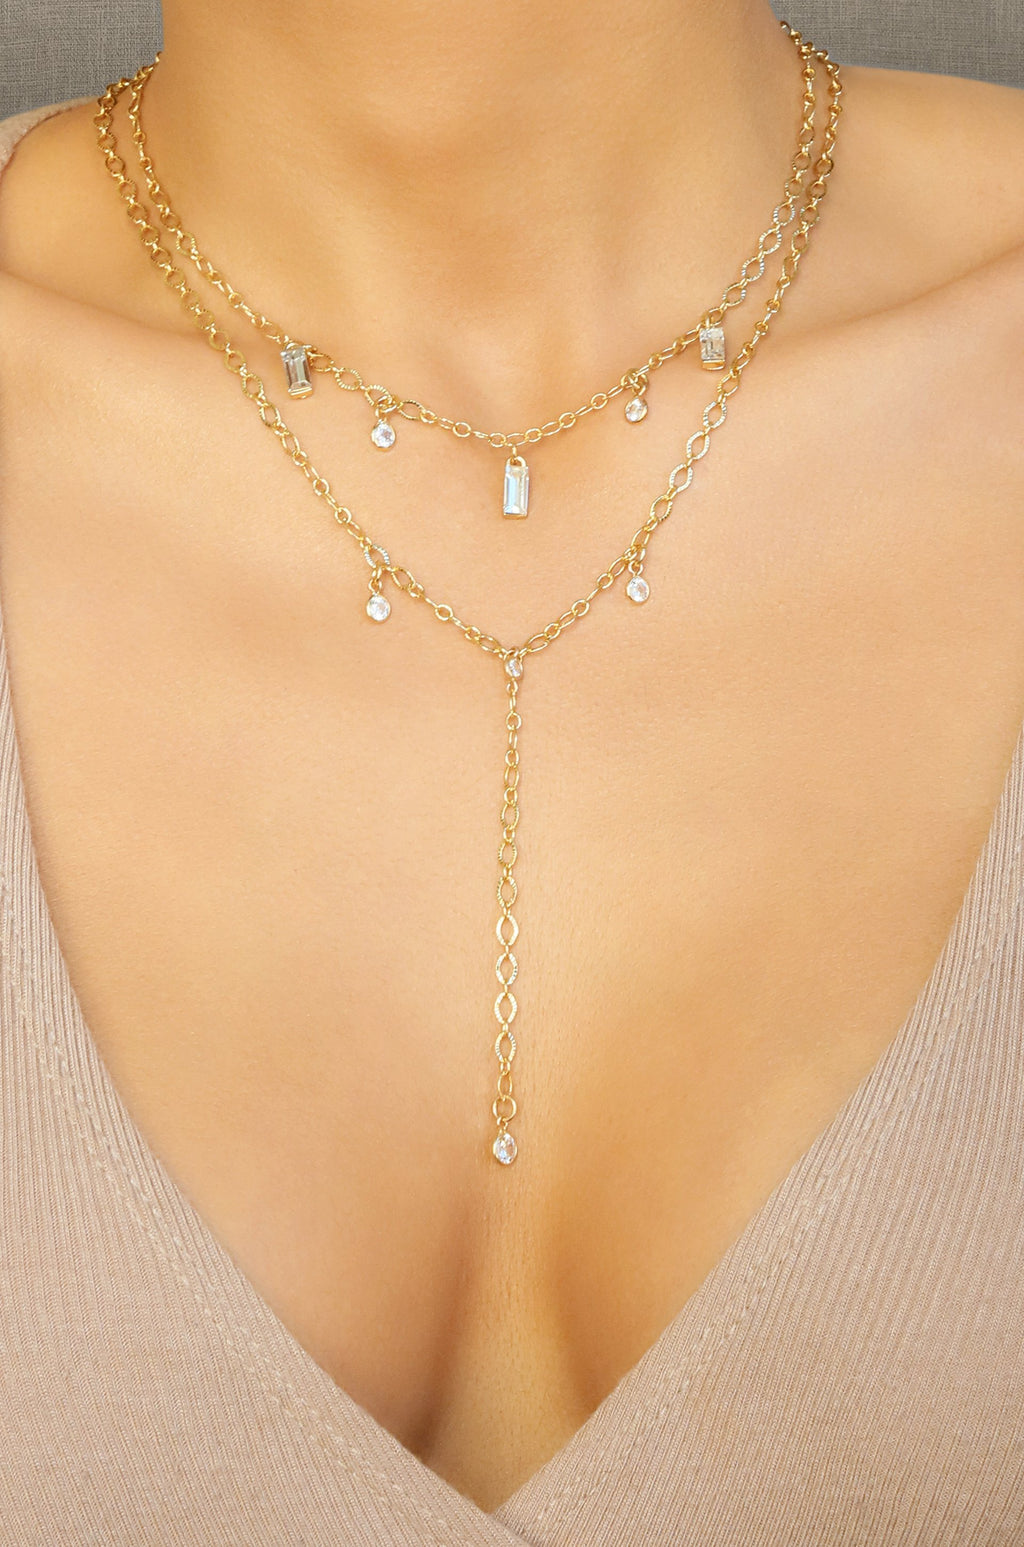 'VIP' 18kt Gold Plated Layered Necklace Set